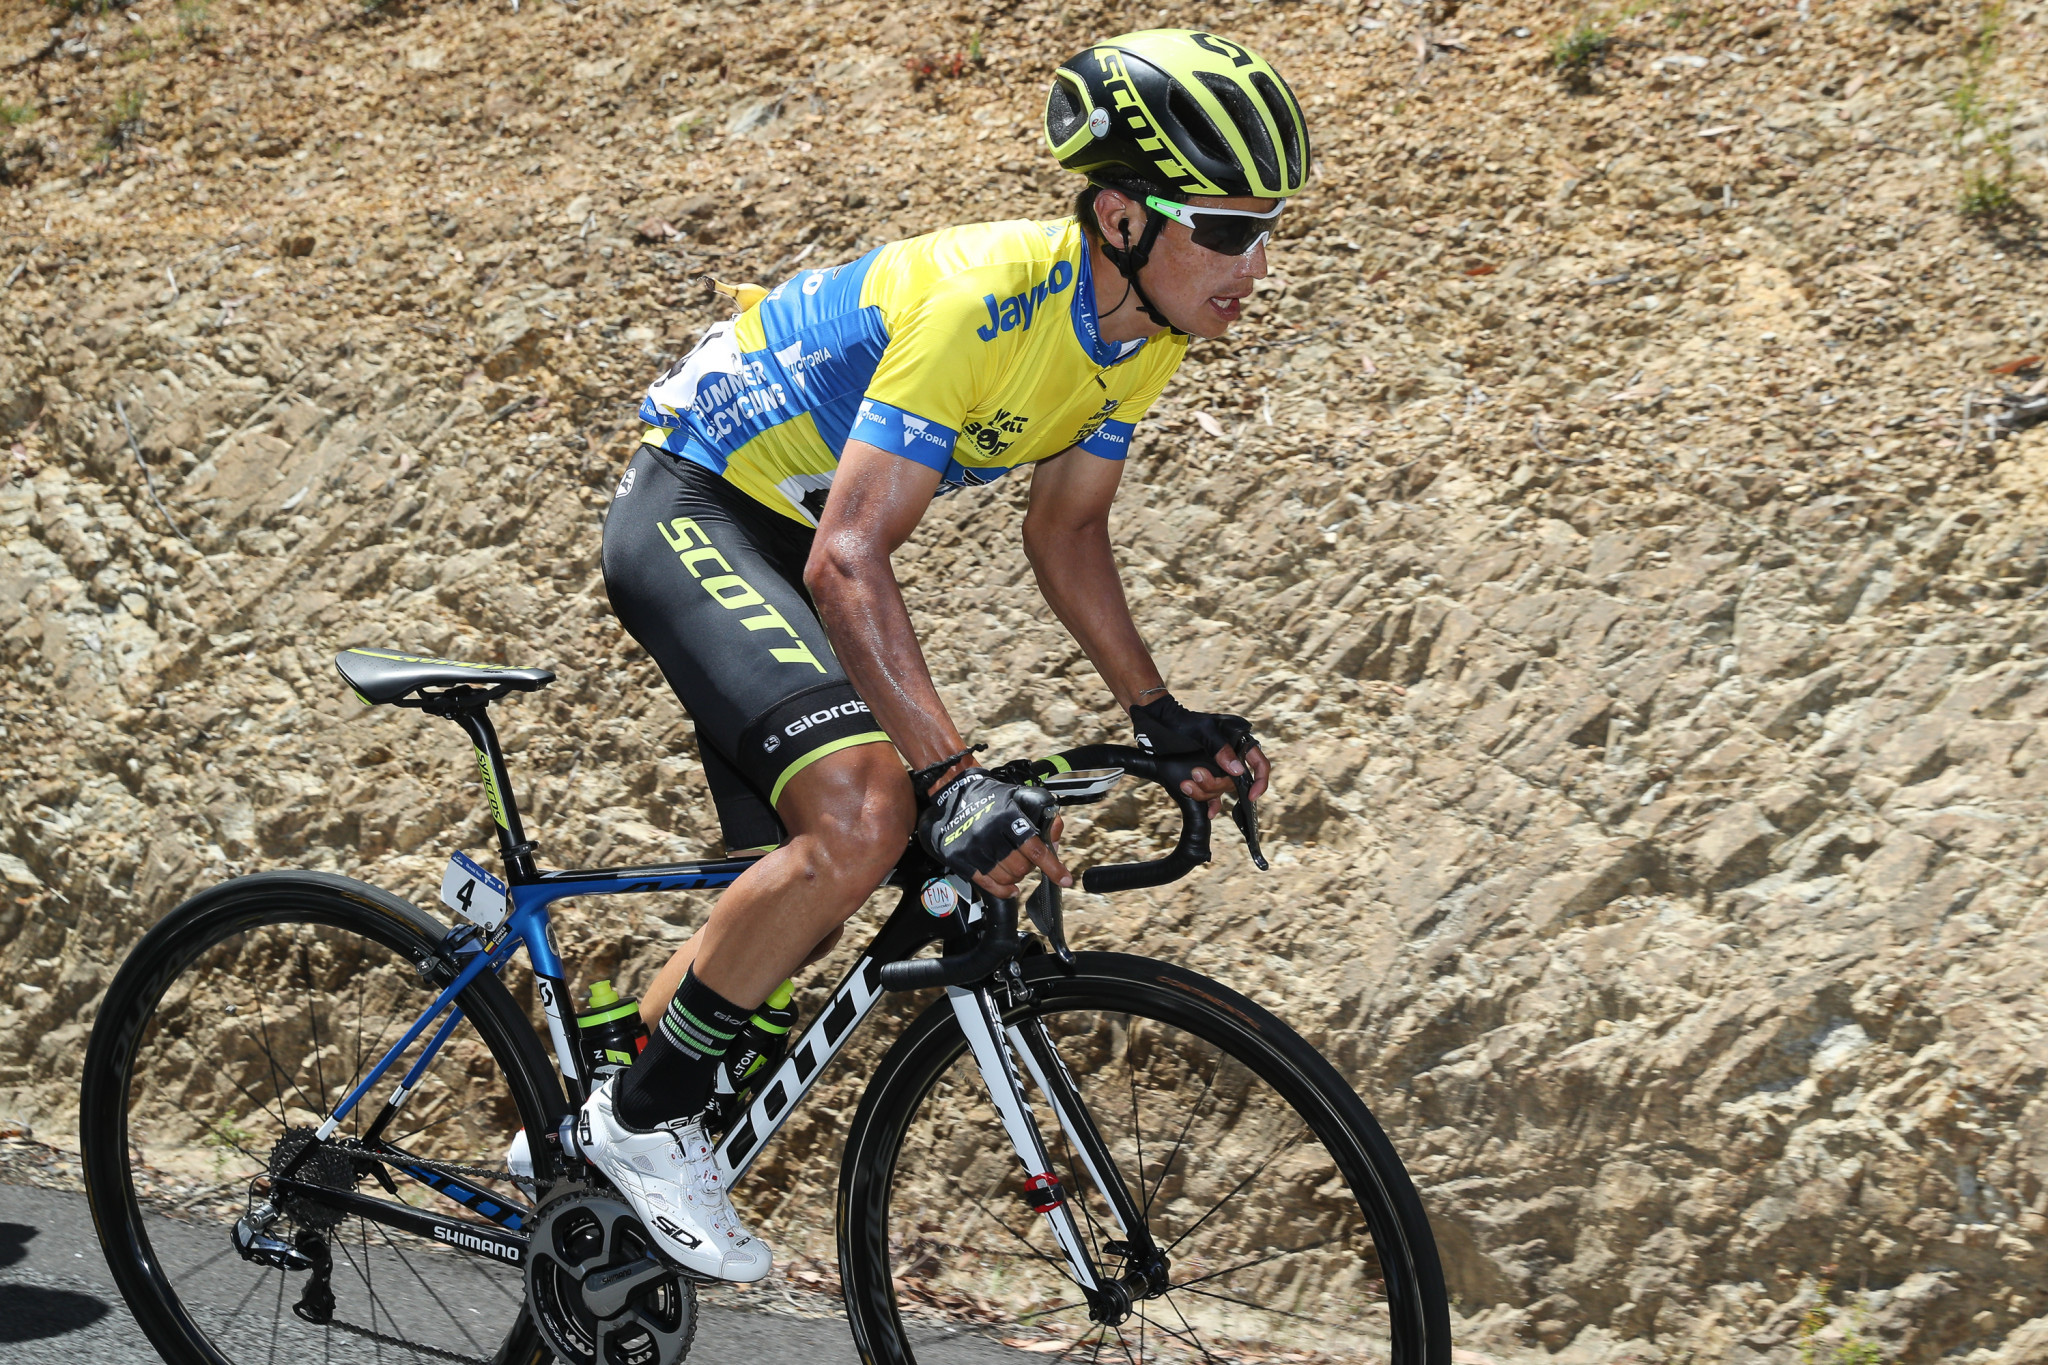 Esteban Chaves has suffered a major setback at the Giro d'Italia